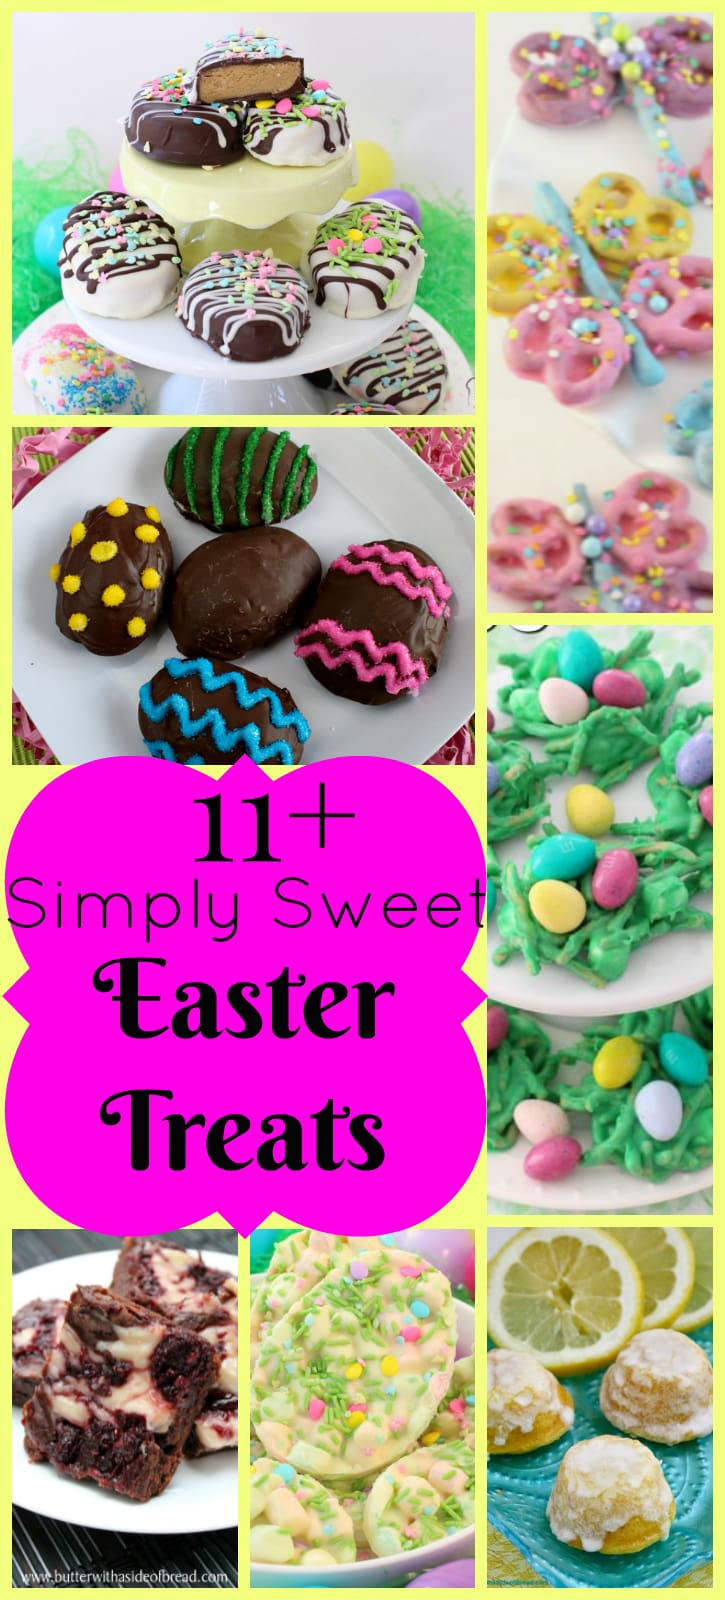 A great list of simple, easy & delicious dessert recipes for Easter! Spring recipe ideas from Butter With A Side of Bread